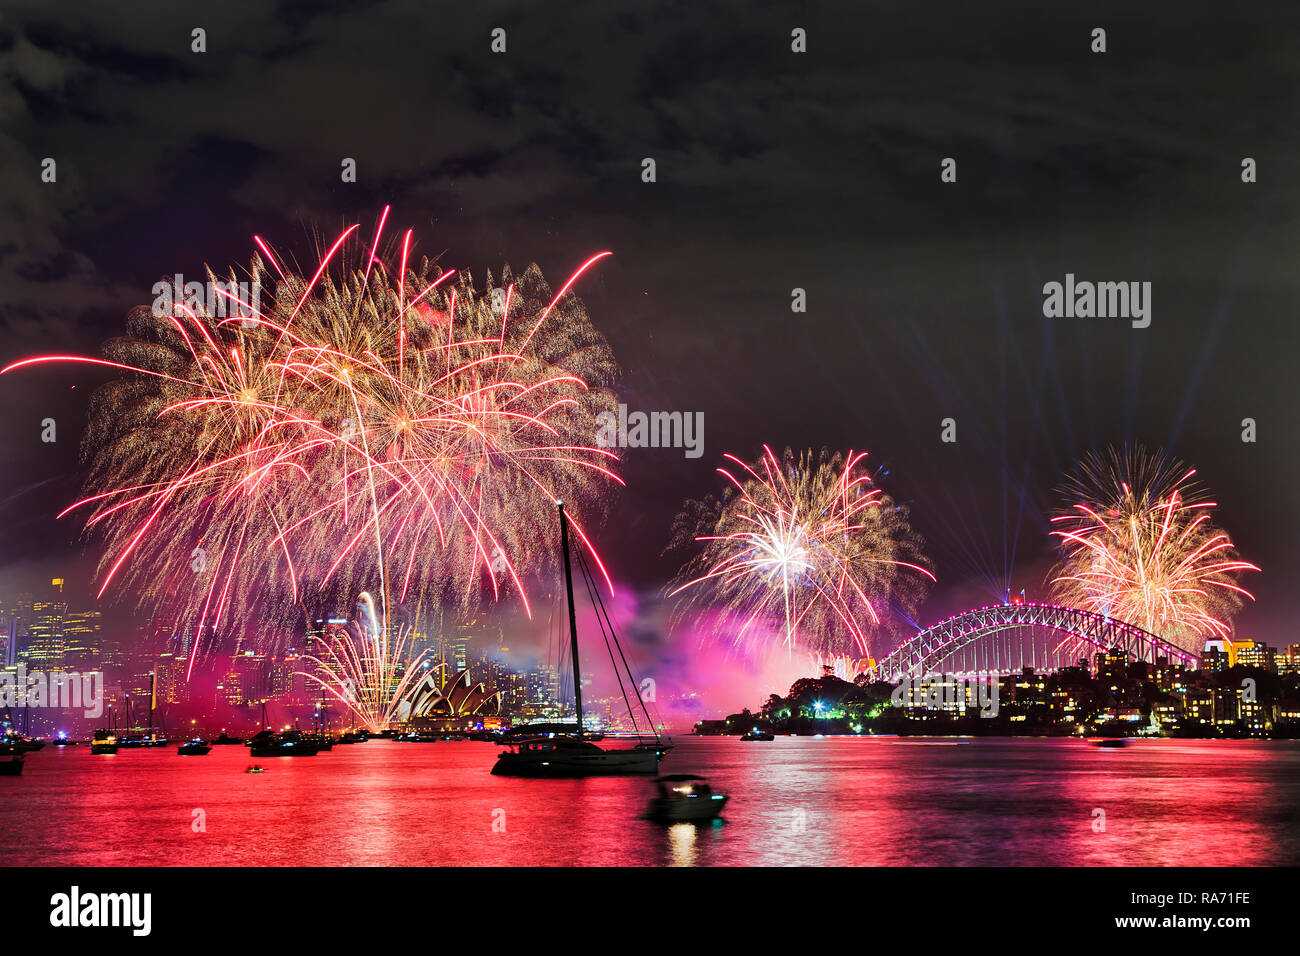 Red bright light balls of annual New Year midnight fireworks in Sydney city over waters of Sydney harbour over major city CBD landmarks. - Stock Image